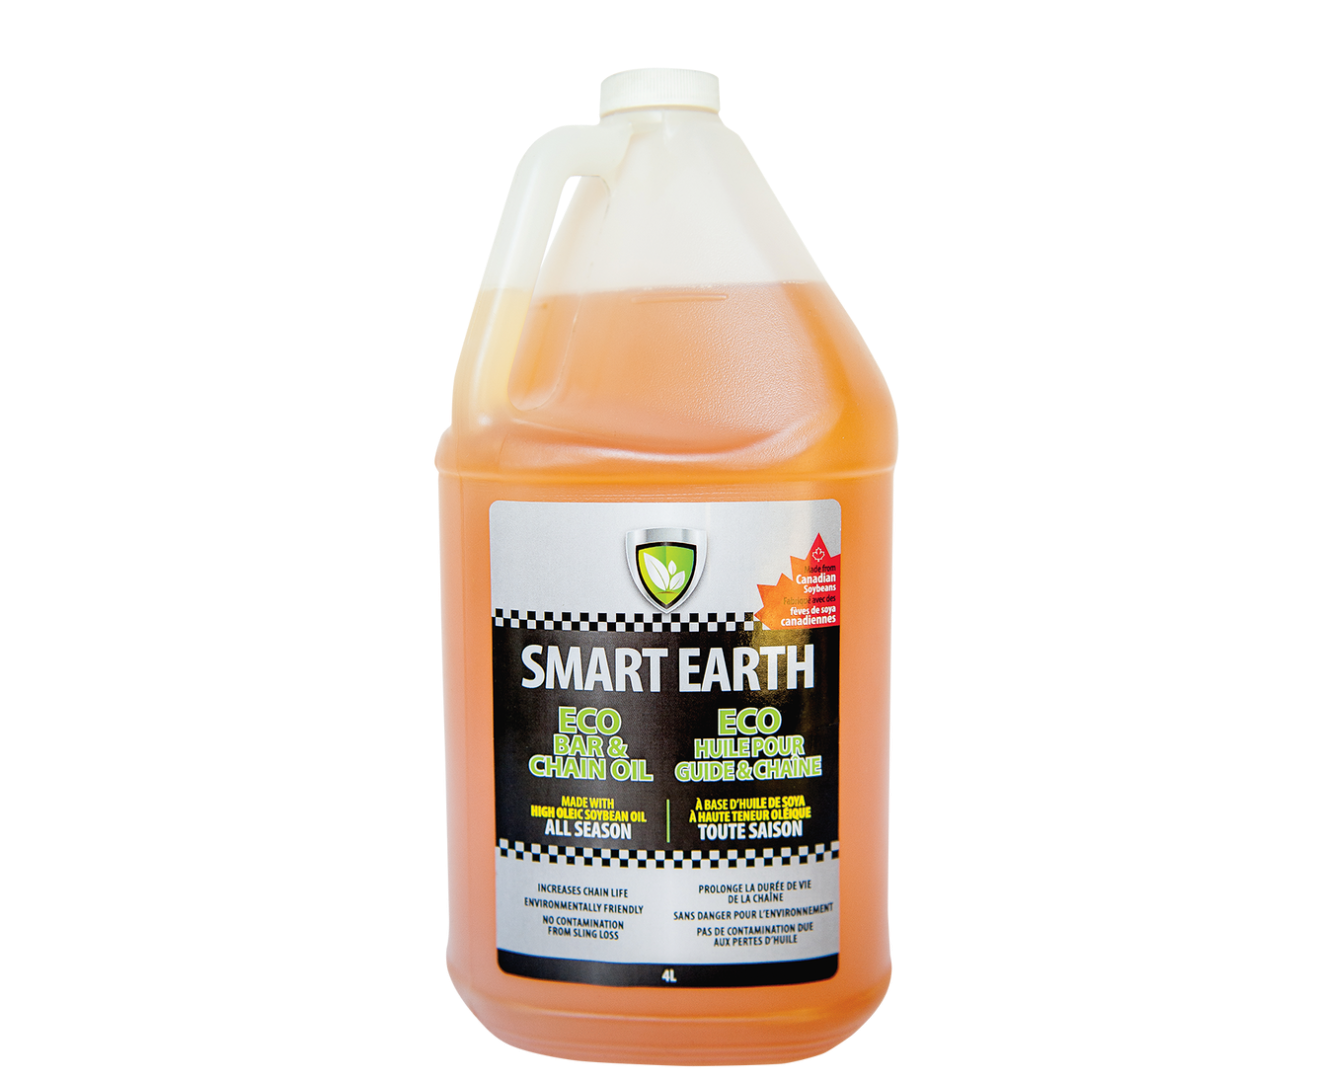 Smart Earth Bar and Chain Oil 4L Product Image